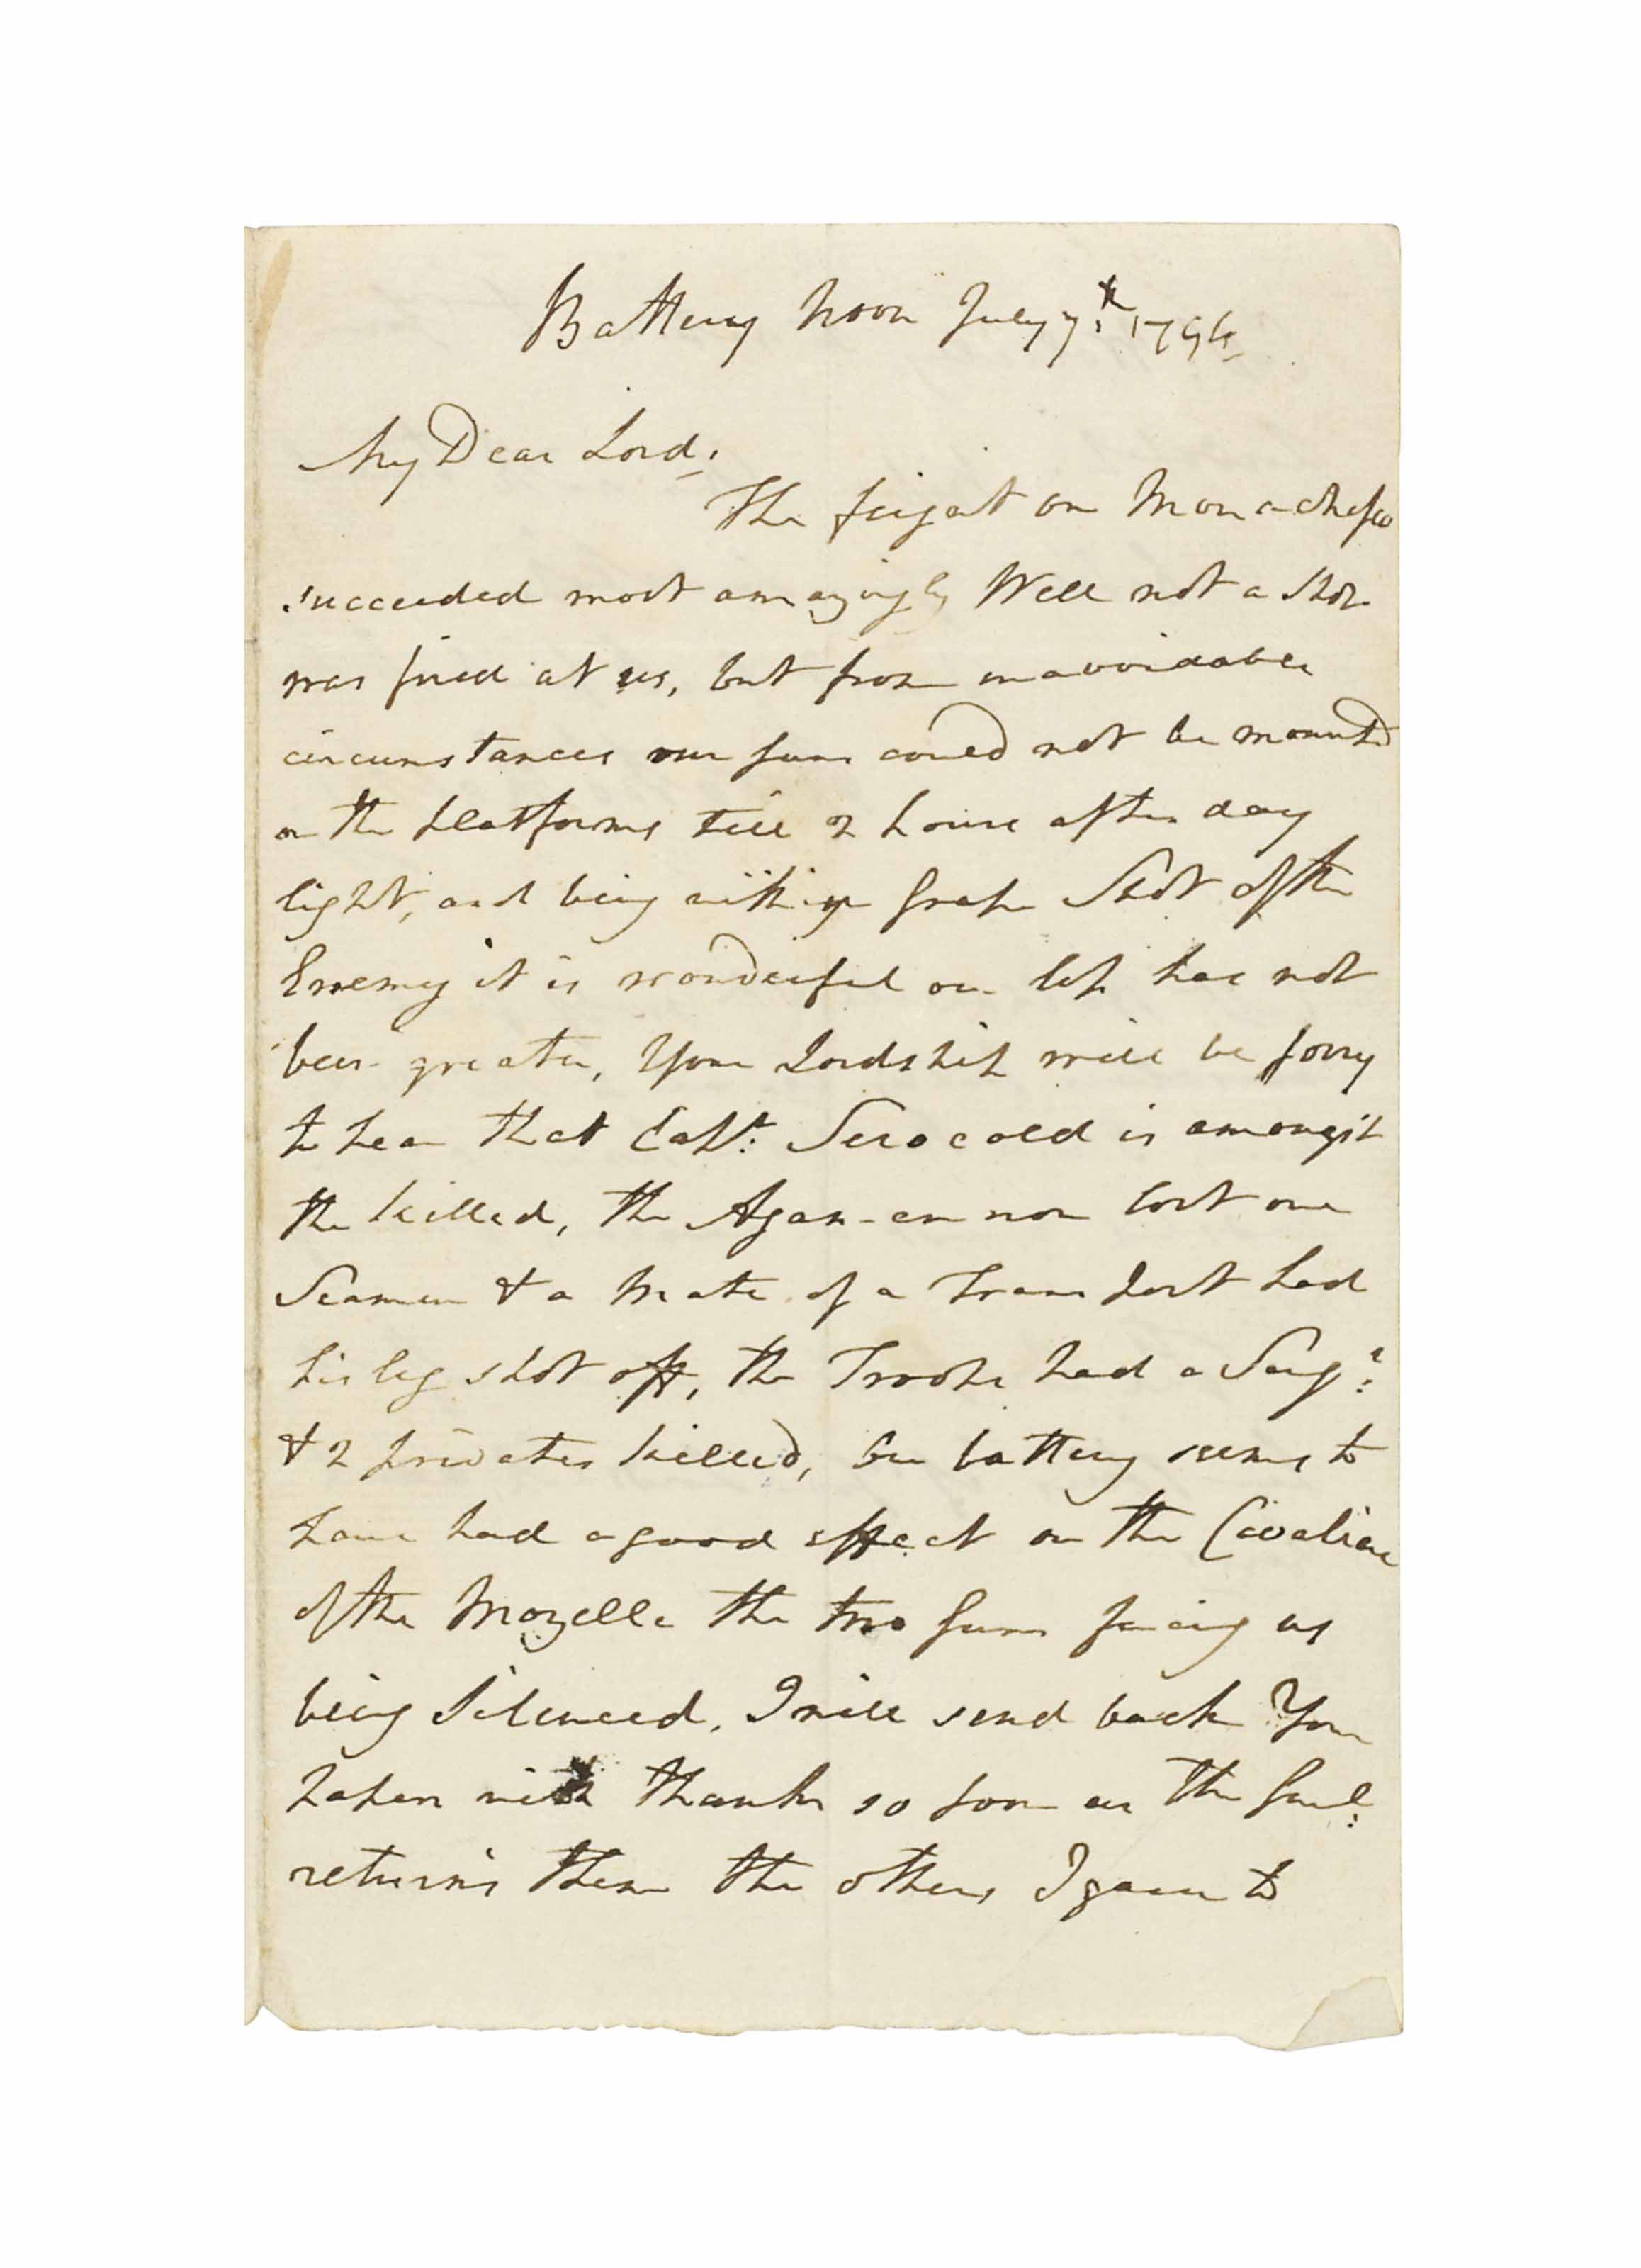 NELSON, Horatio, Viscount (1758-1805). Autograph letter signed ('Horatio Nelson'), with his right hand, to Admiral Samuel Hood, 1st Viscount Hood, commander of the Mediterranean fleet, 'Battery', noon, 7 July 1794, 2 pages, 8vo, bifolium, docket (small tear along base of central fold, remnant of seal). Provenance: Christie's, 20 June 1990, lot 199.